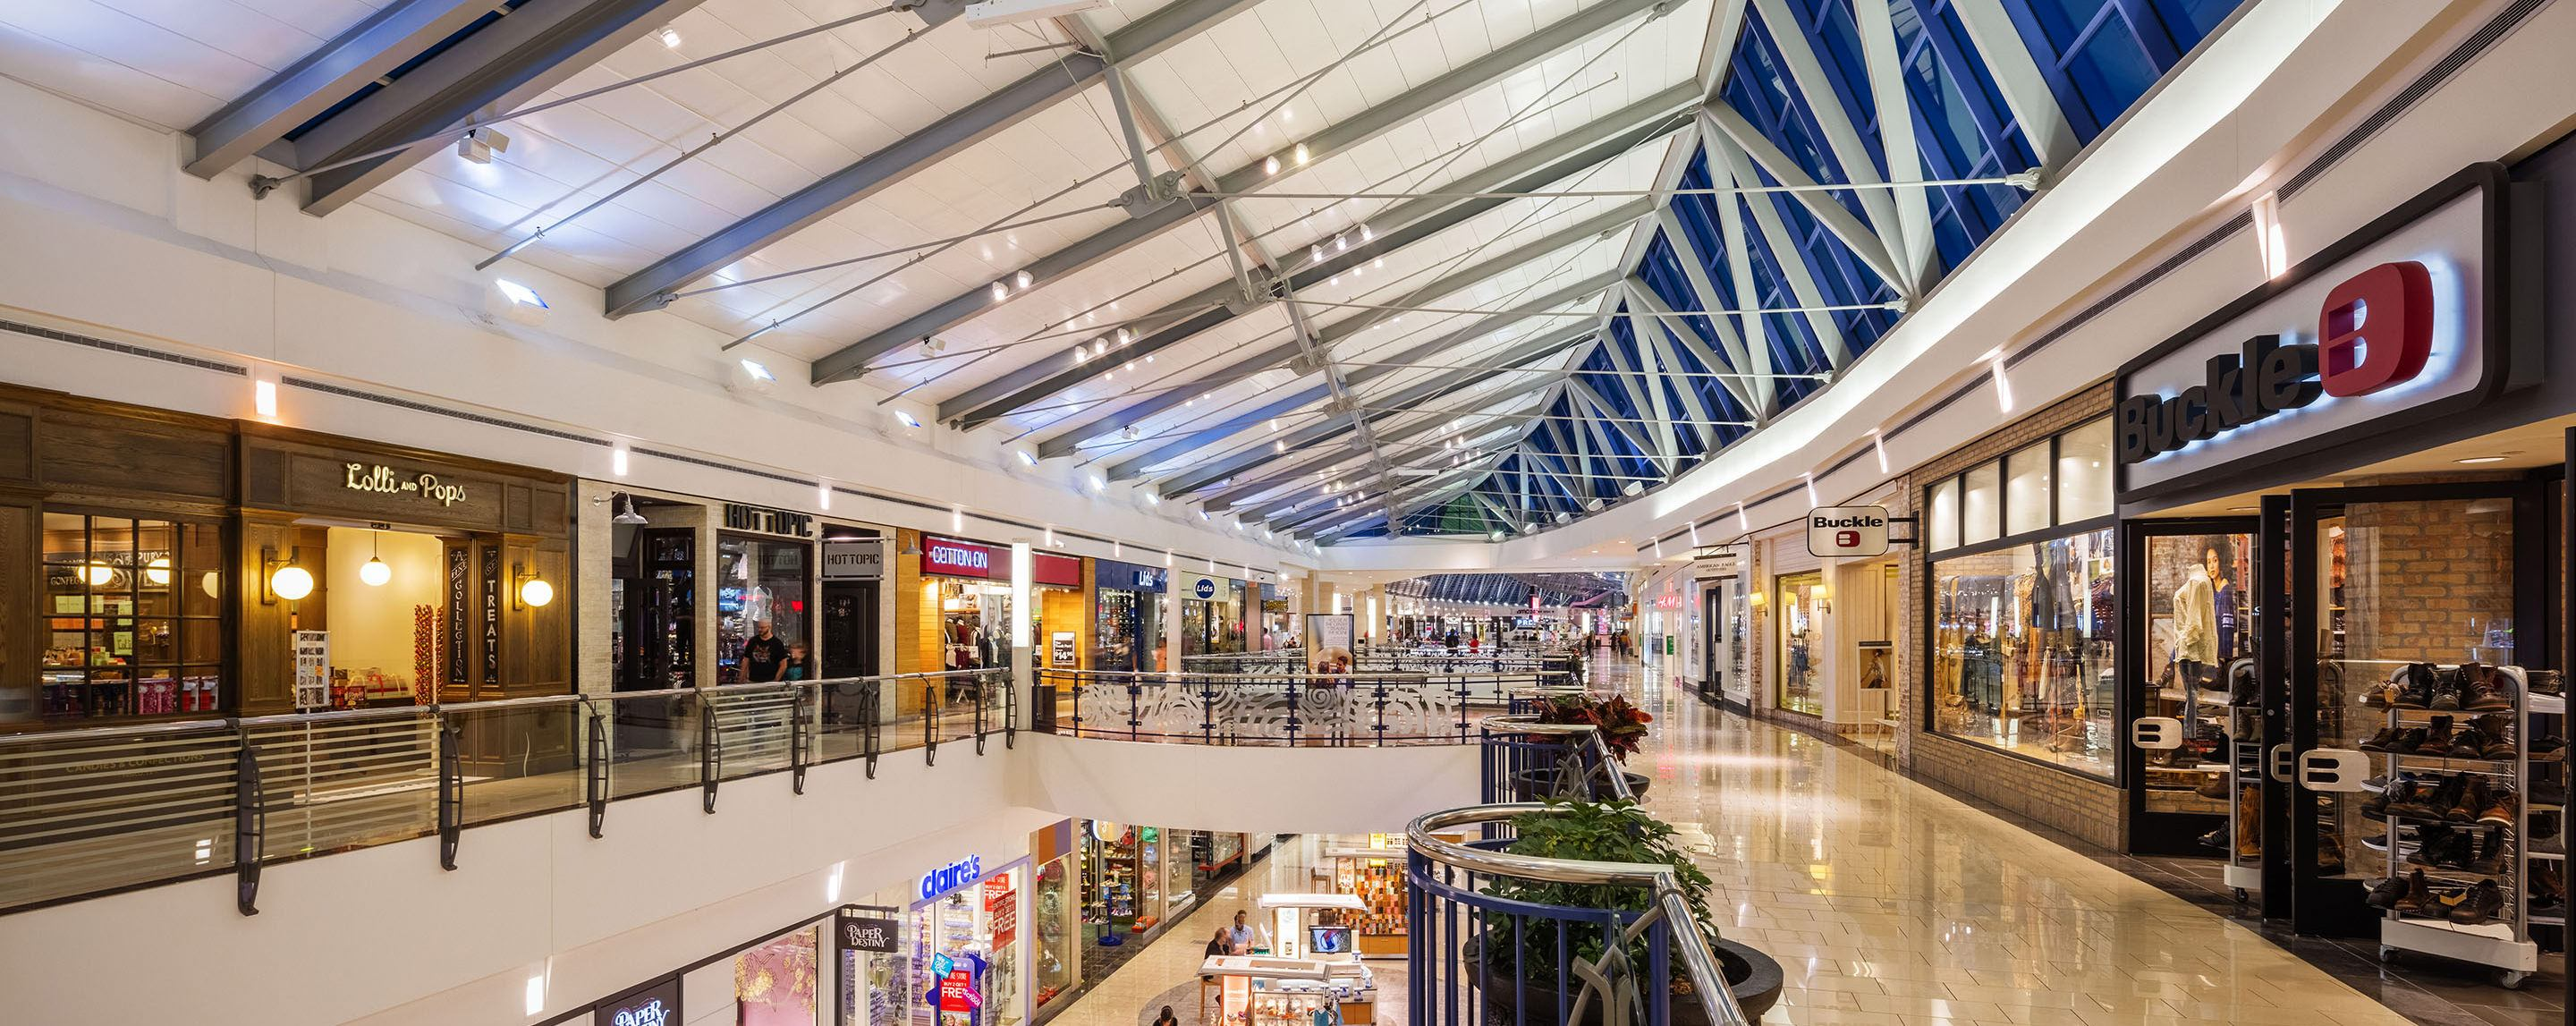 Lids, Cotton On, Claire's, Hot Topic, and Buckle stores are inside a two-story indoor shopping center with upper skylights.